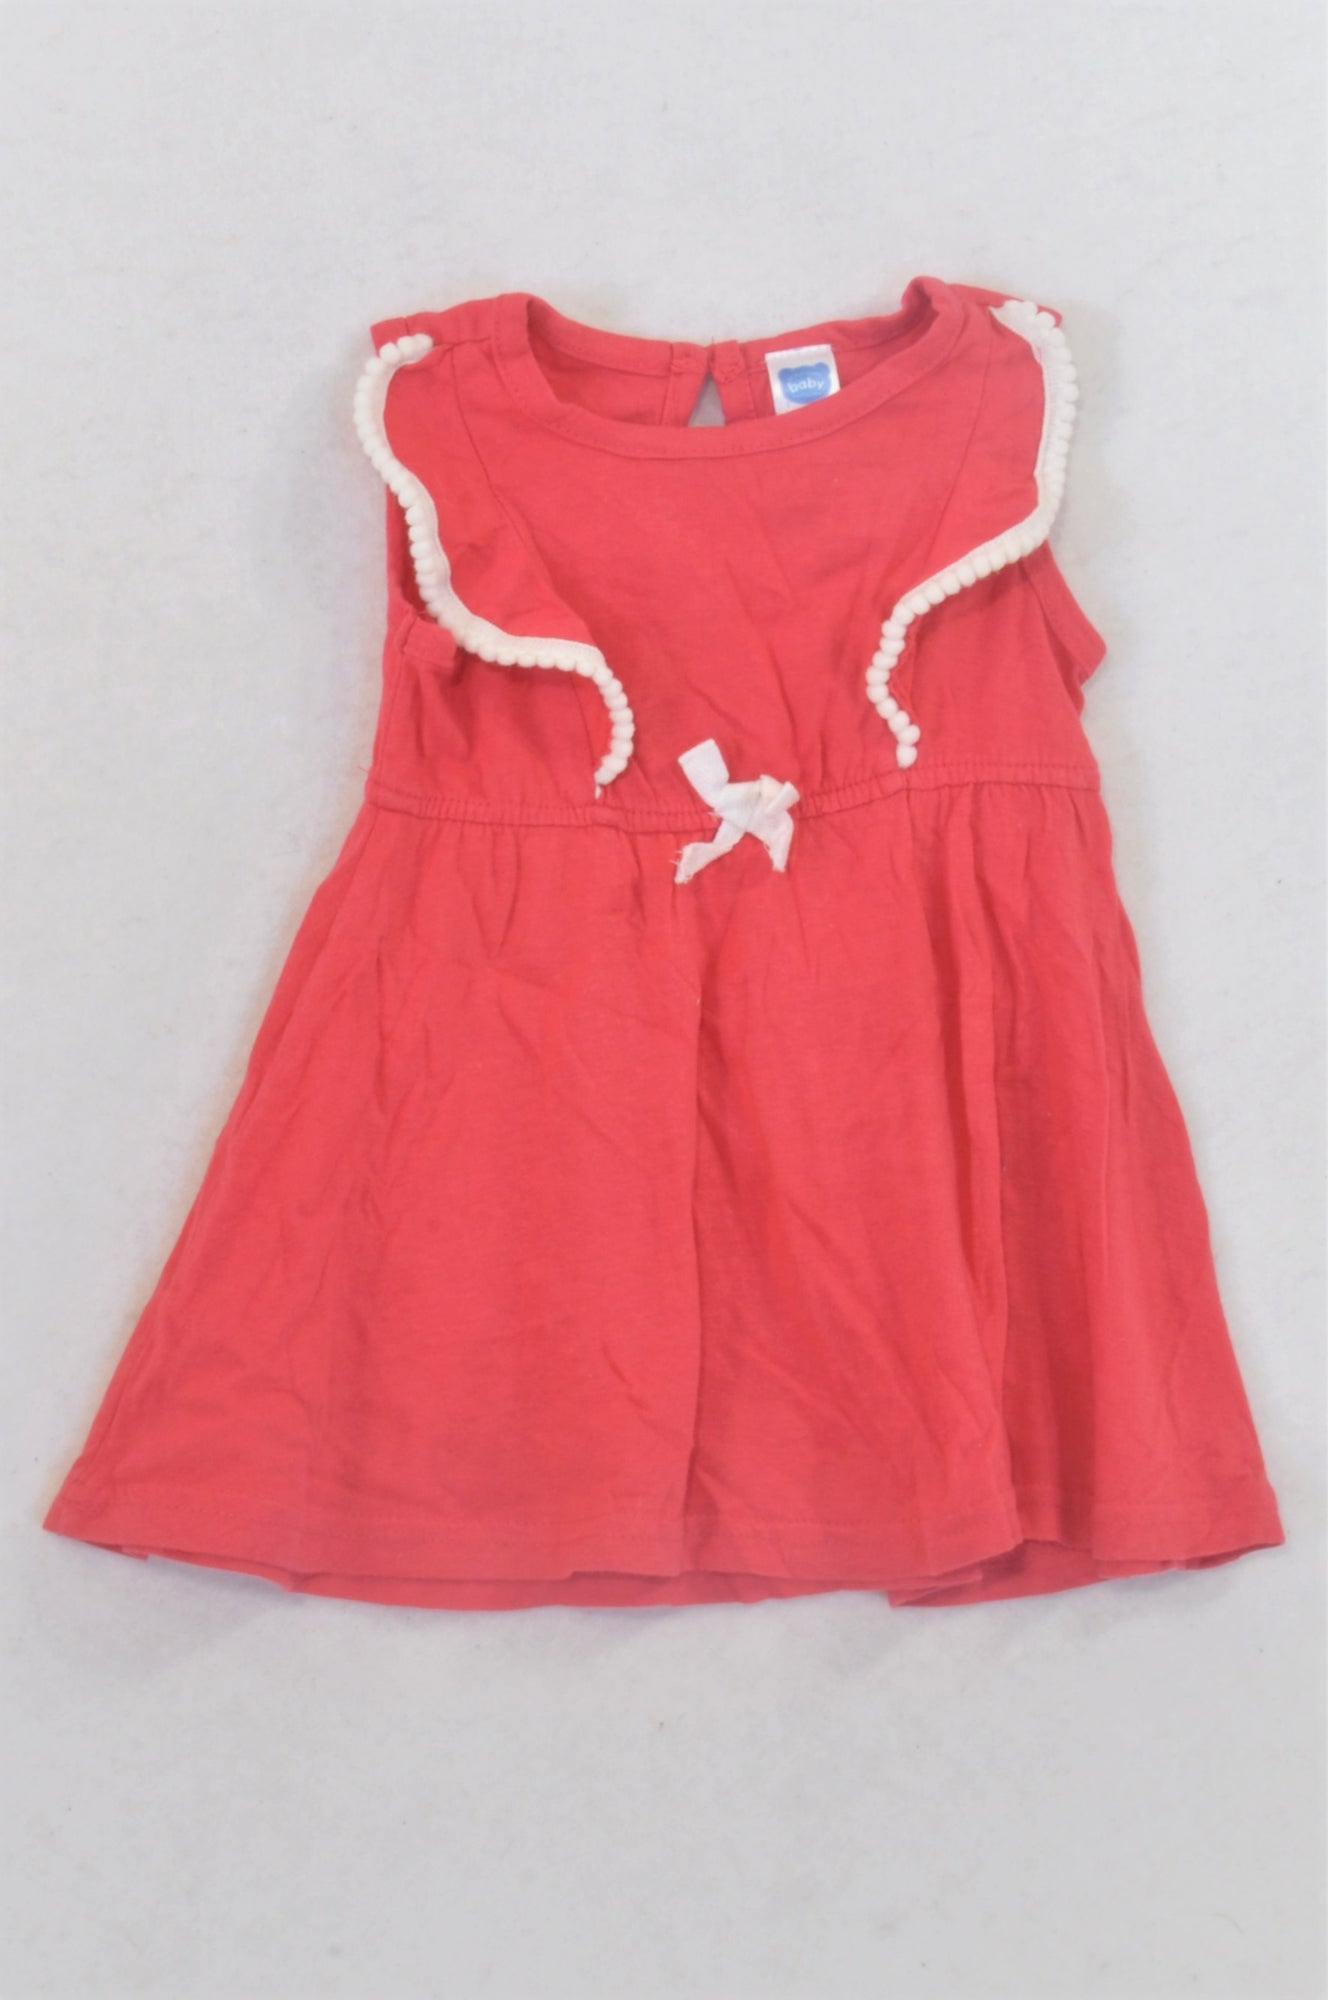 Ackermans Cerise Bauble Detail Dress Girls 3-6 months